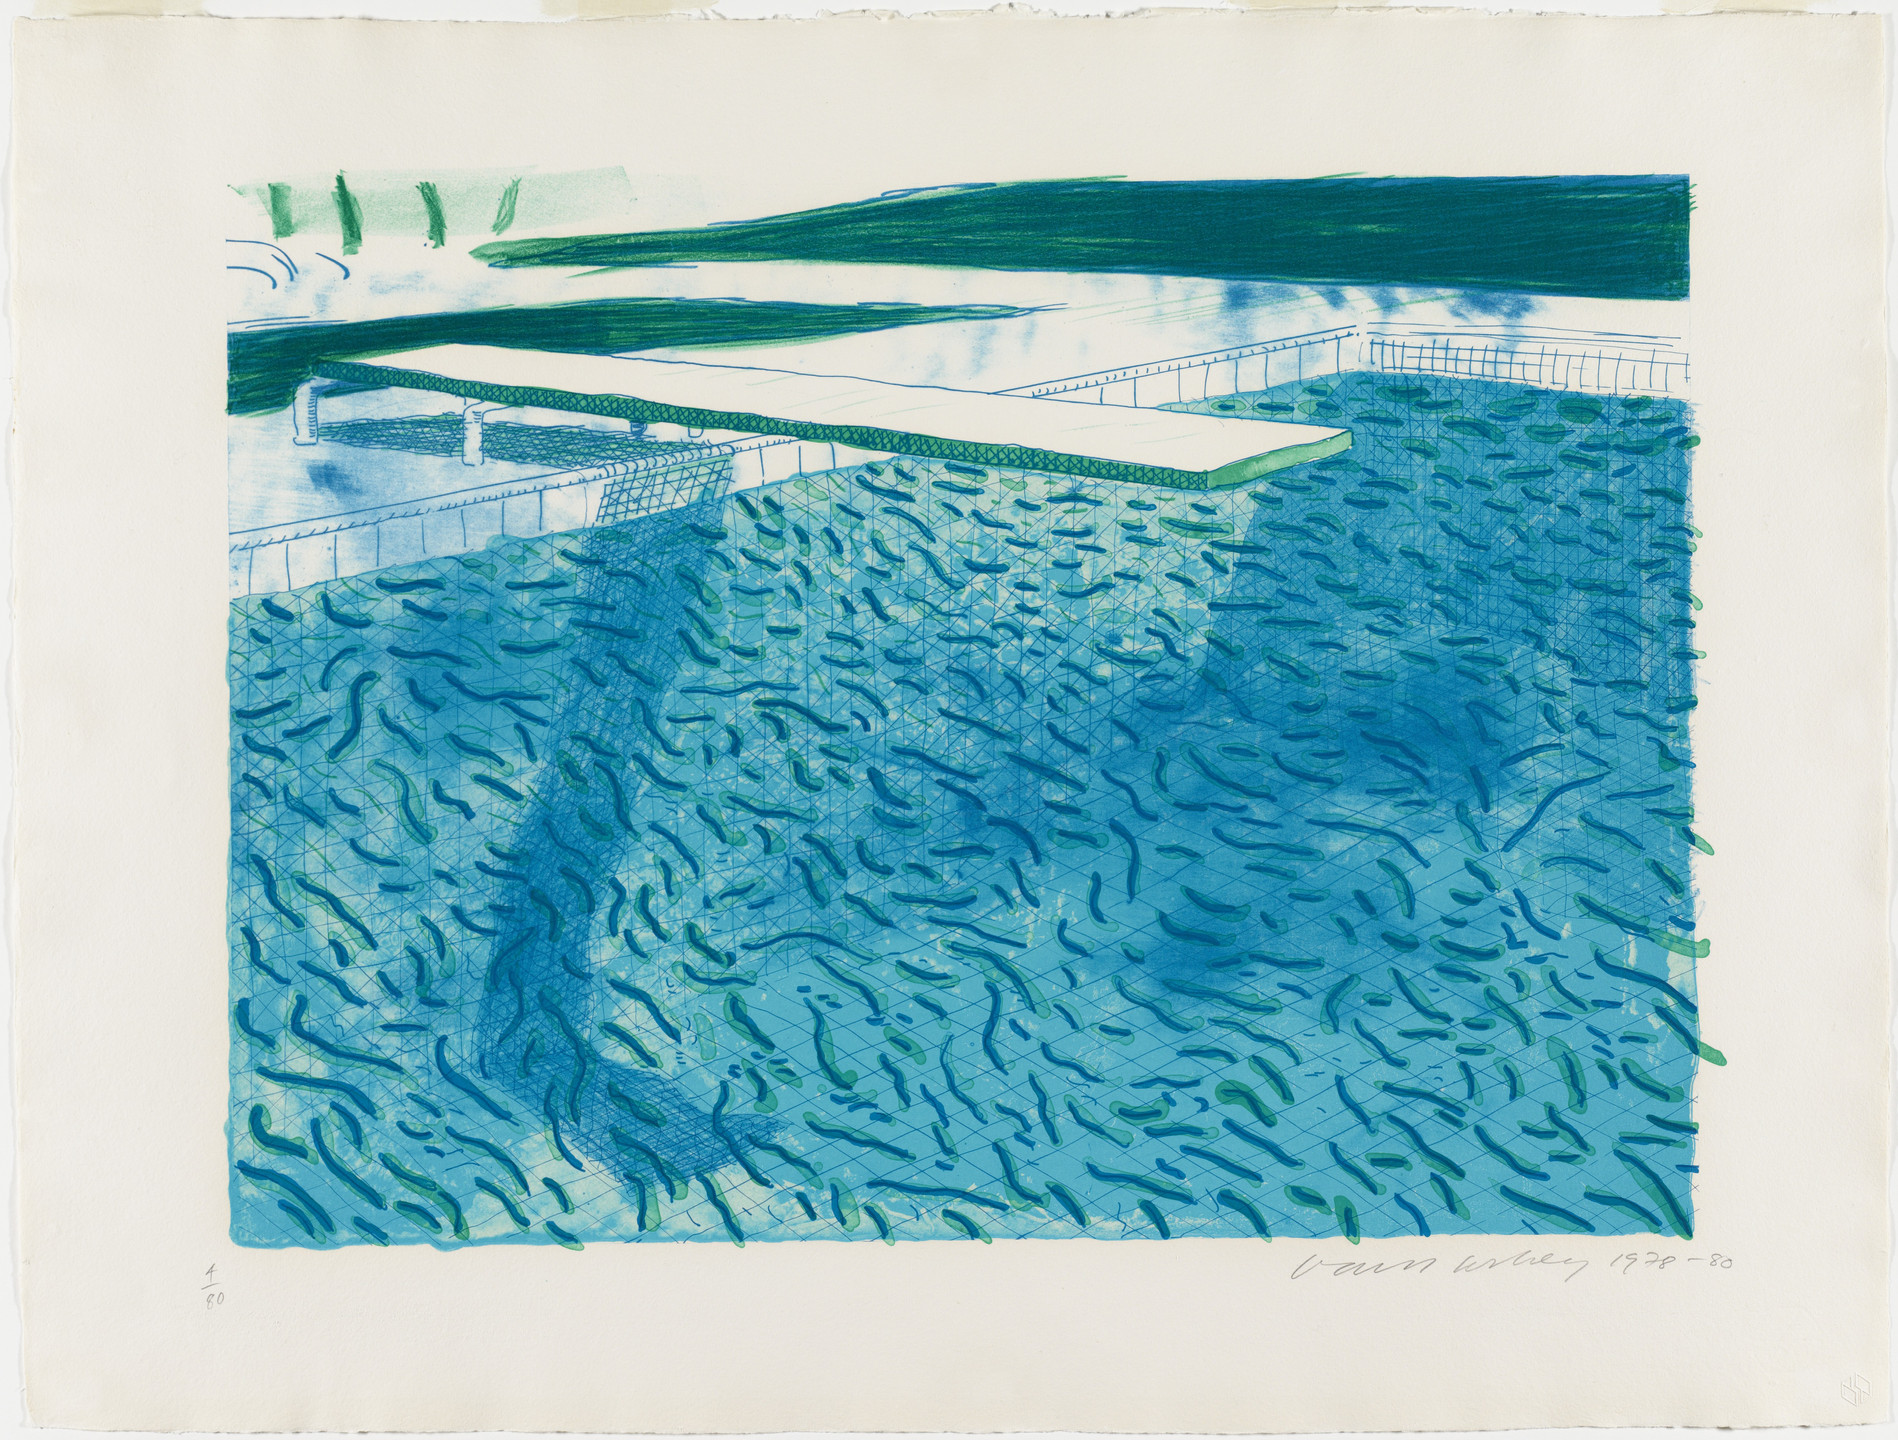 David Hockney. Lithograph of Water Made of Thick and Thin Lines, a Green Wash, a Light Blue Wash, and a Dark Blue Wash. 1978-80